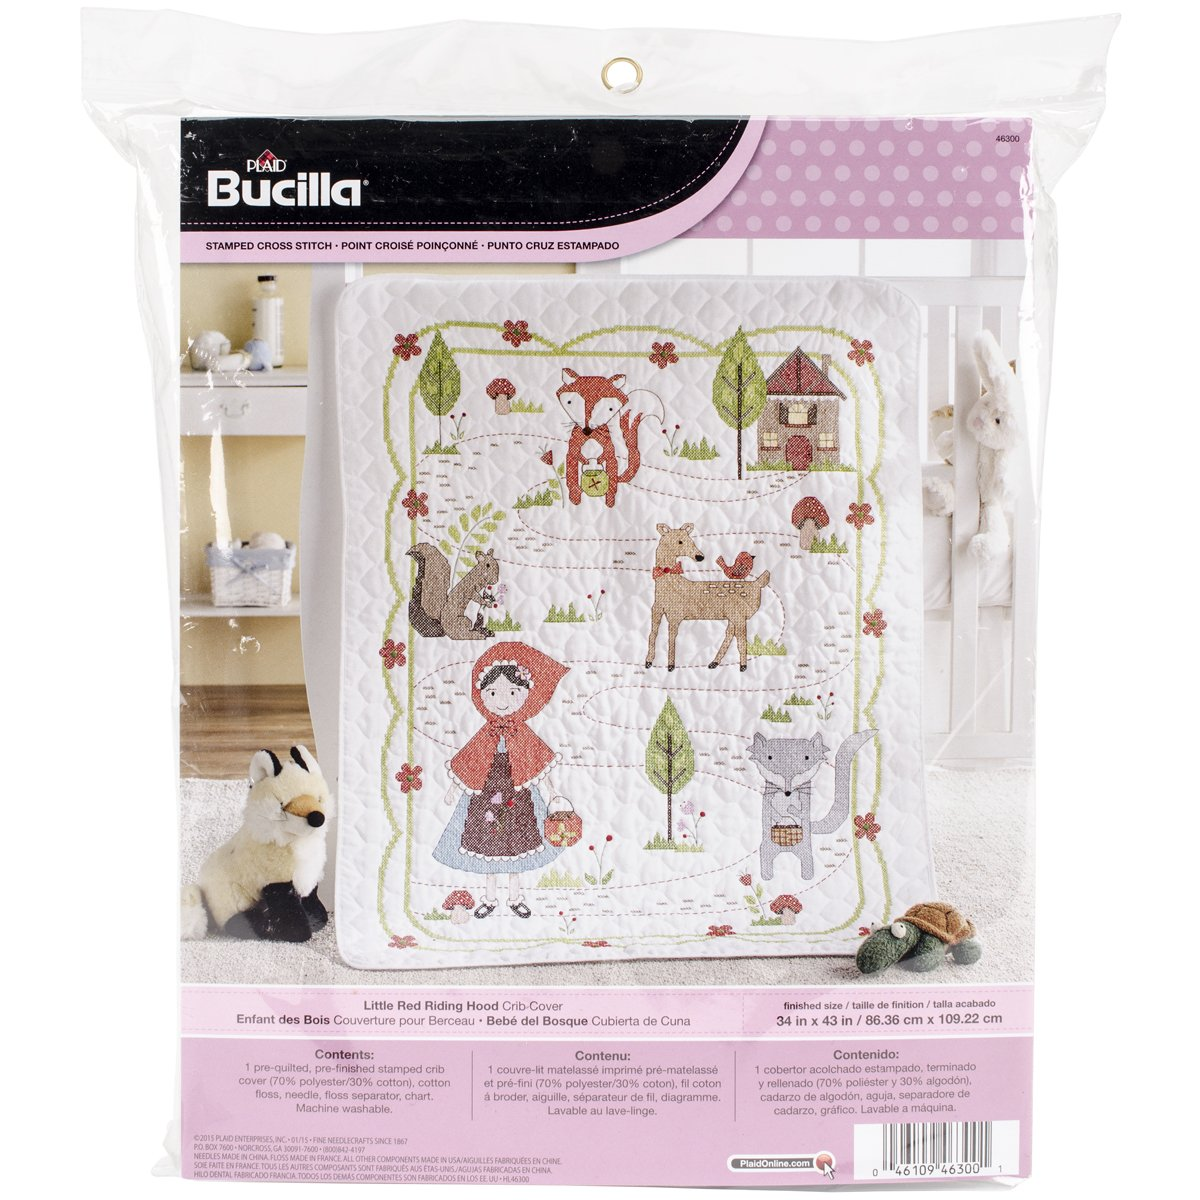 Bucilla Stamped Cross Stitch Crib Cover Kit, 34 by 43-Inch, 46300 Little Red Riding Hood by Bucilla B00UY12SK0